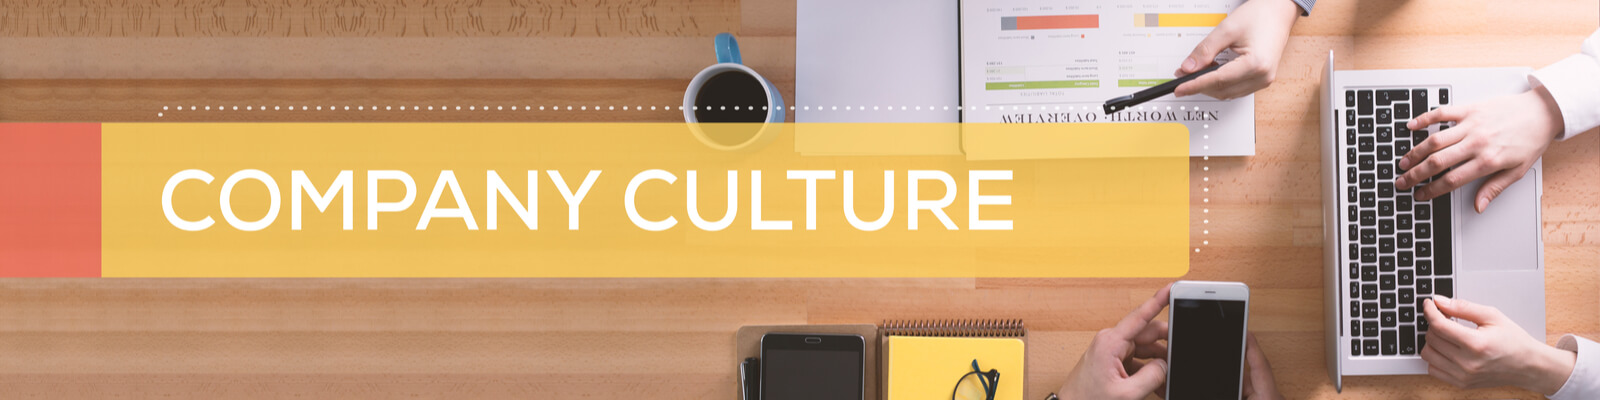 company culture - feature image